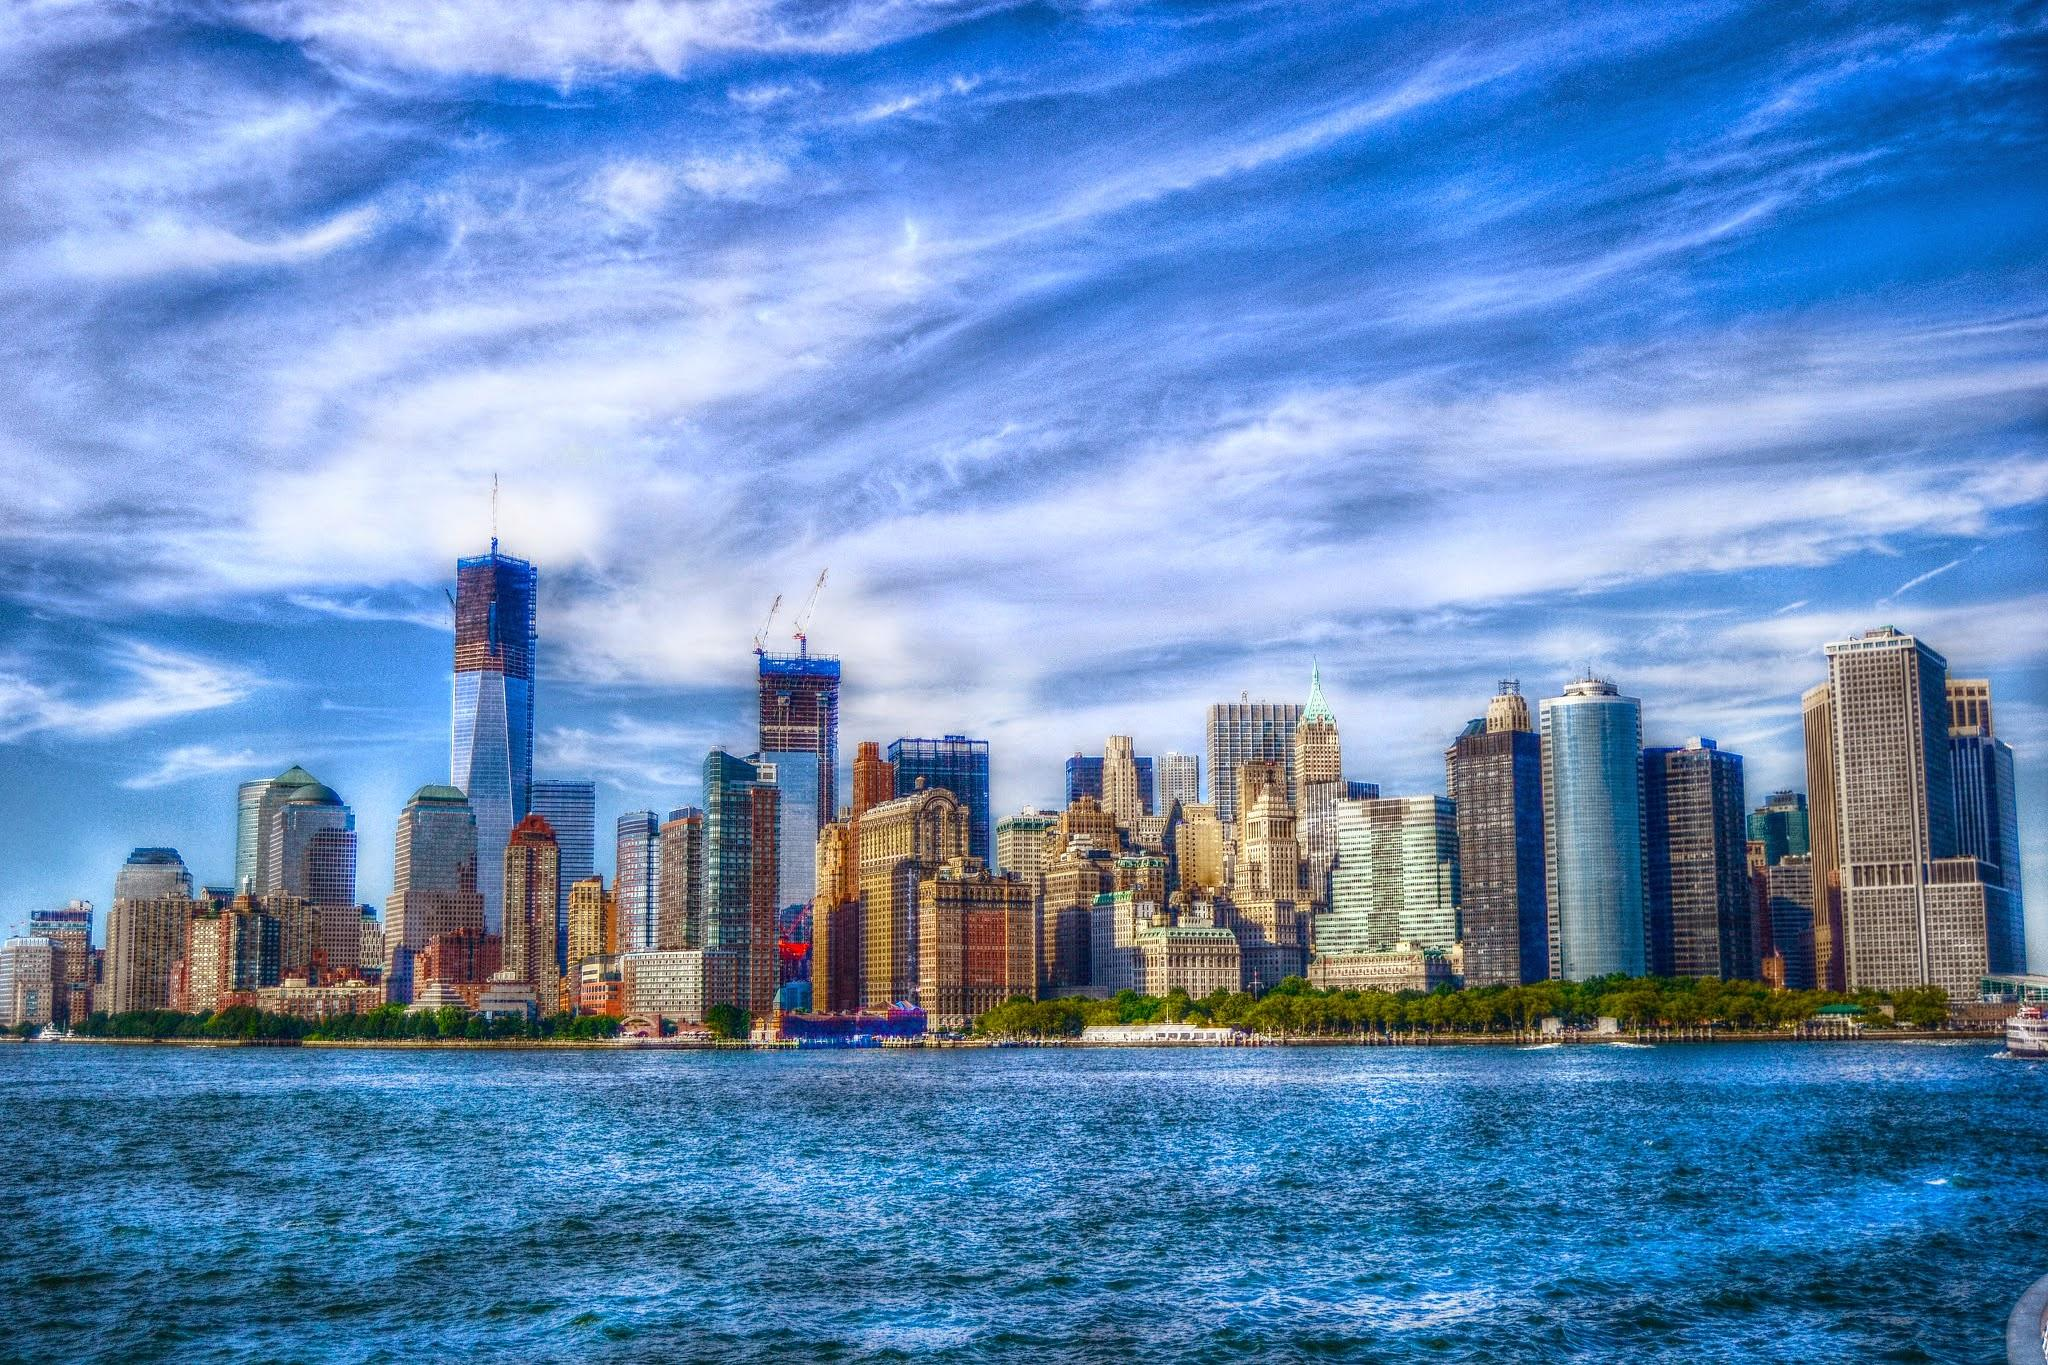 NYC Skyline from Liberty Island by Andrea Scotti